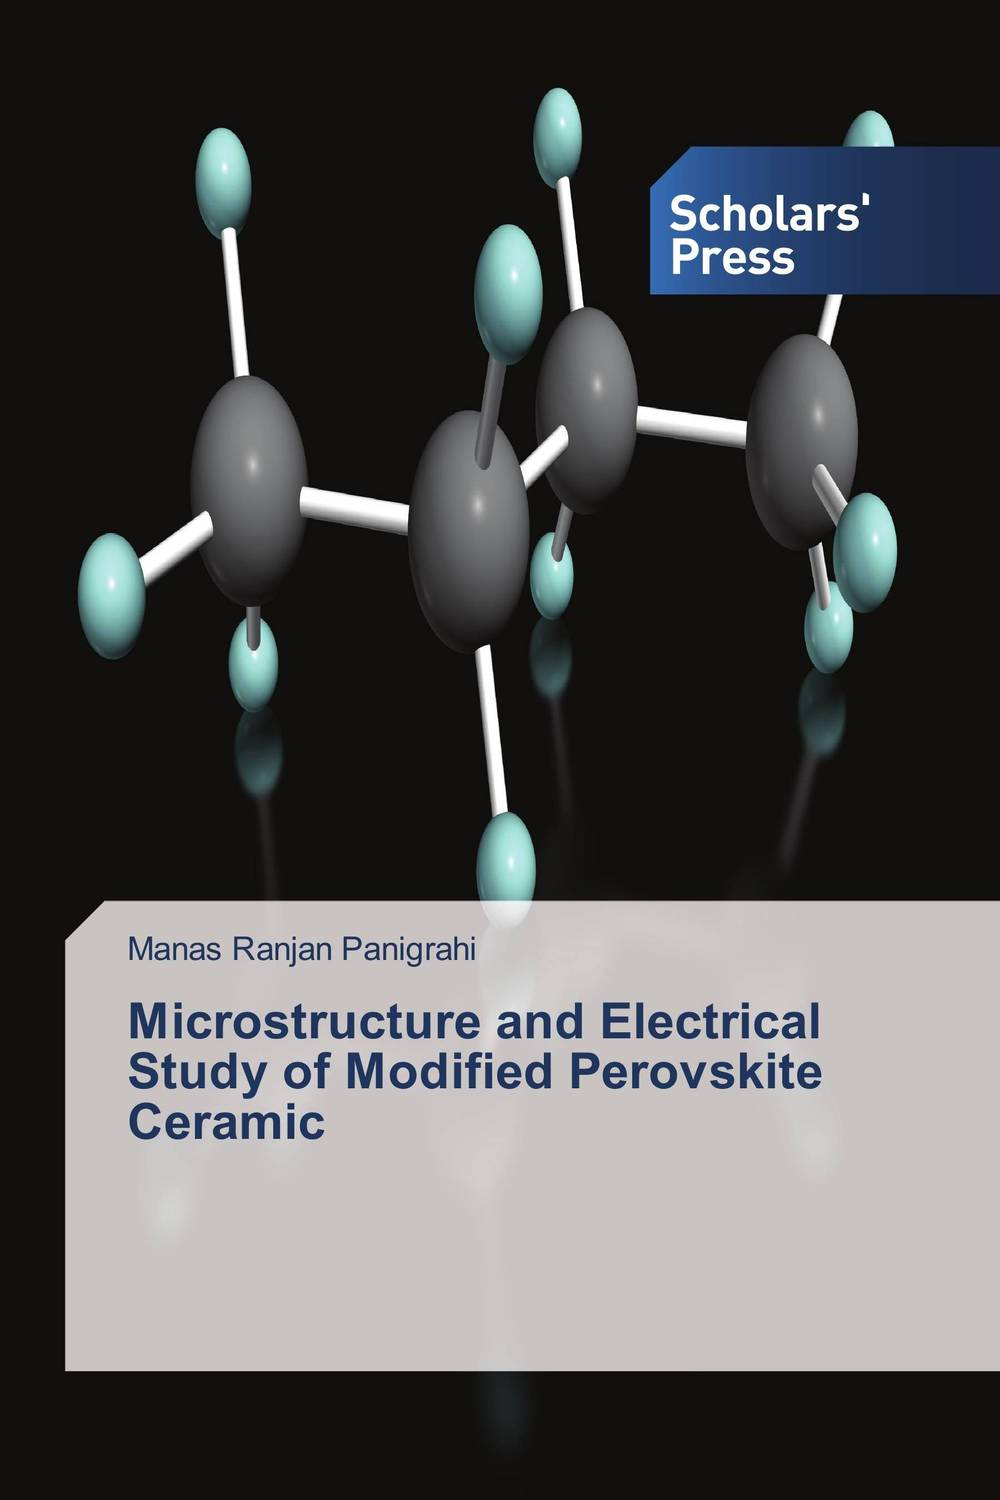 Microstructure and Electrical Study of Modified Perovskite Ceramic